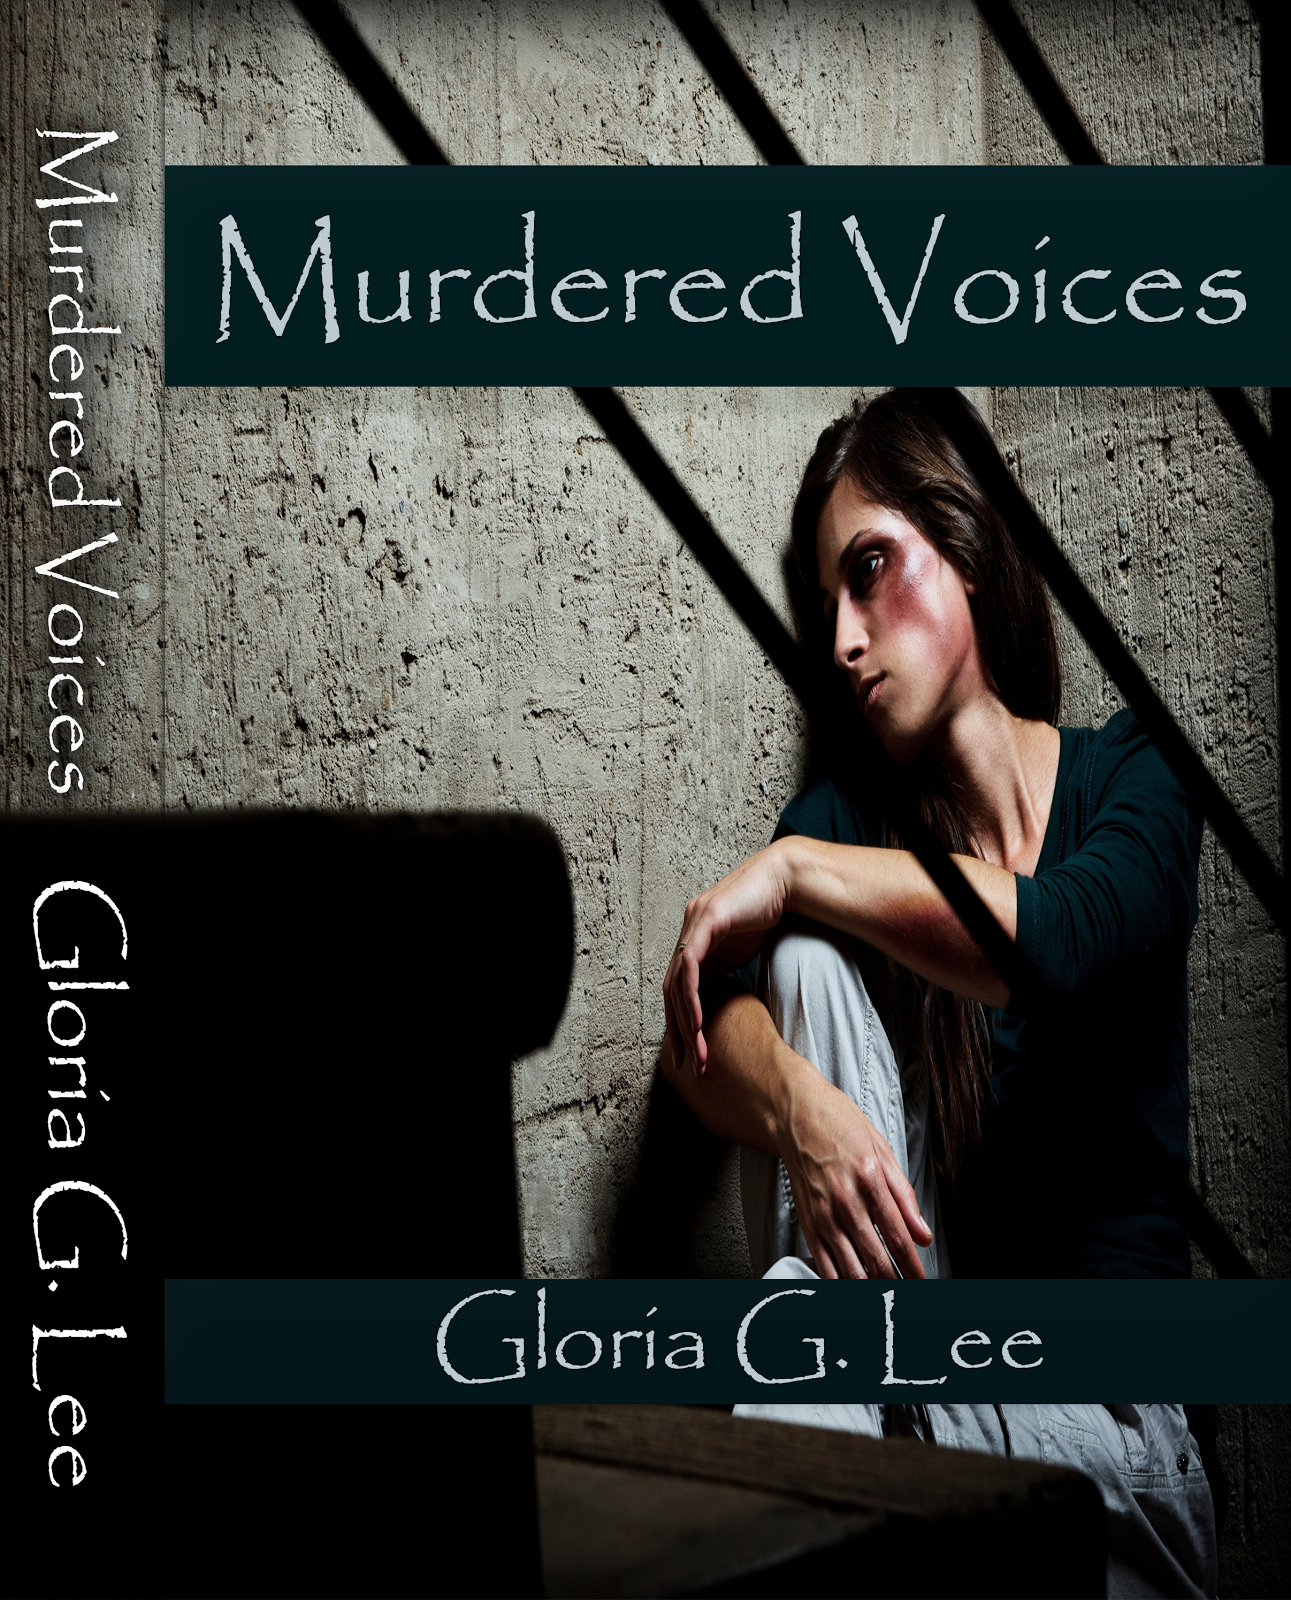 Murdered Voices